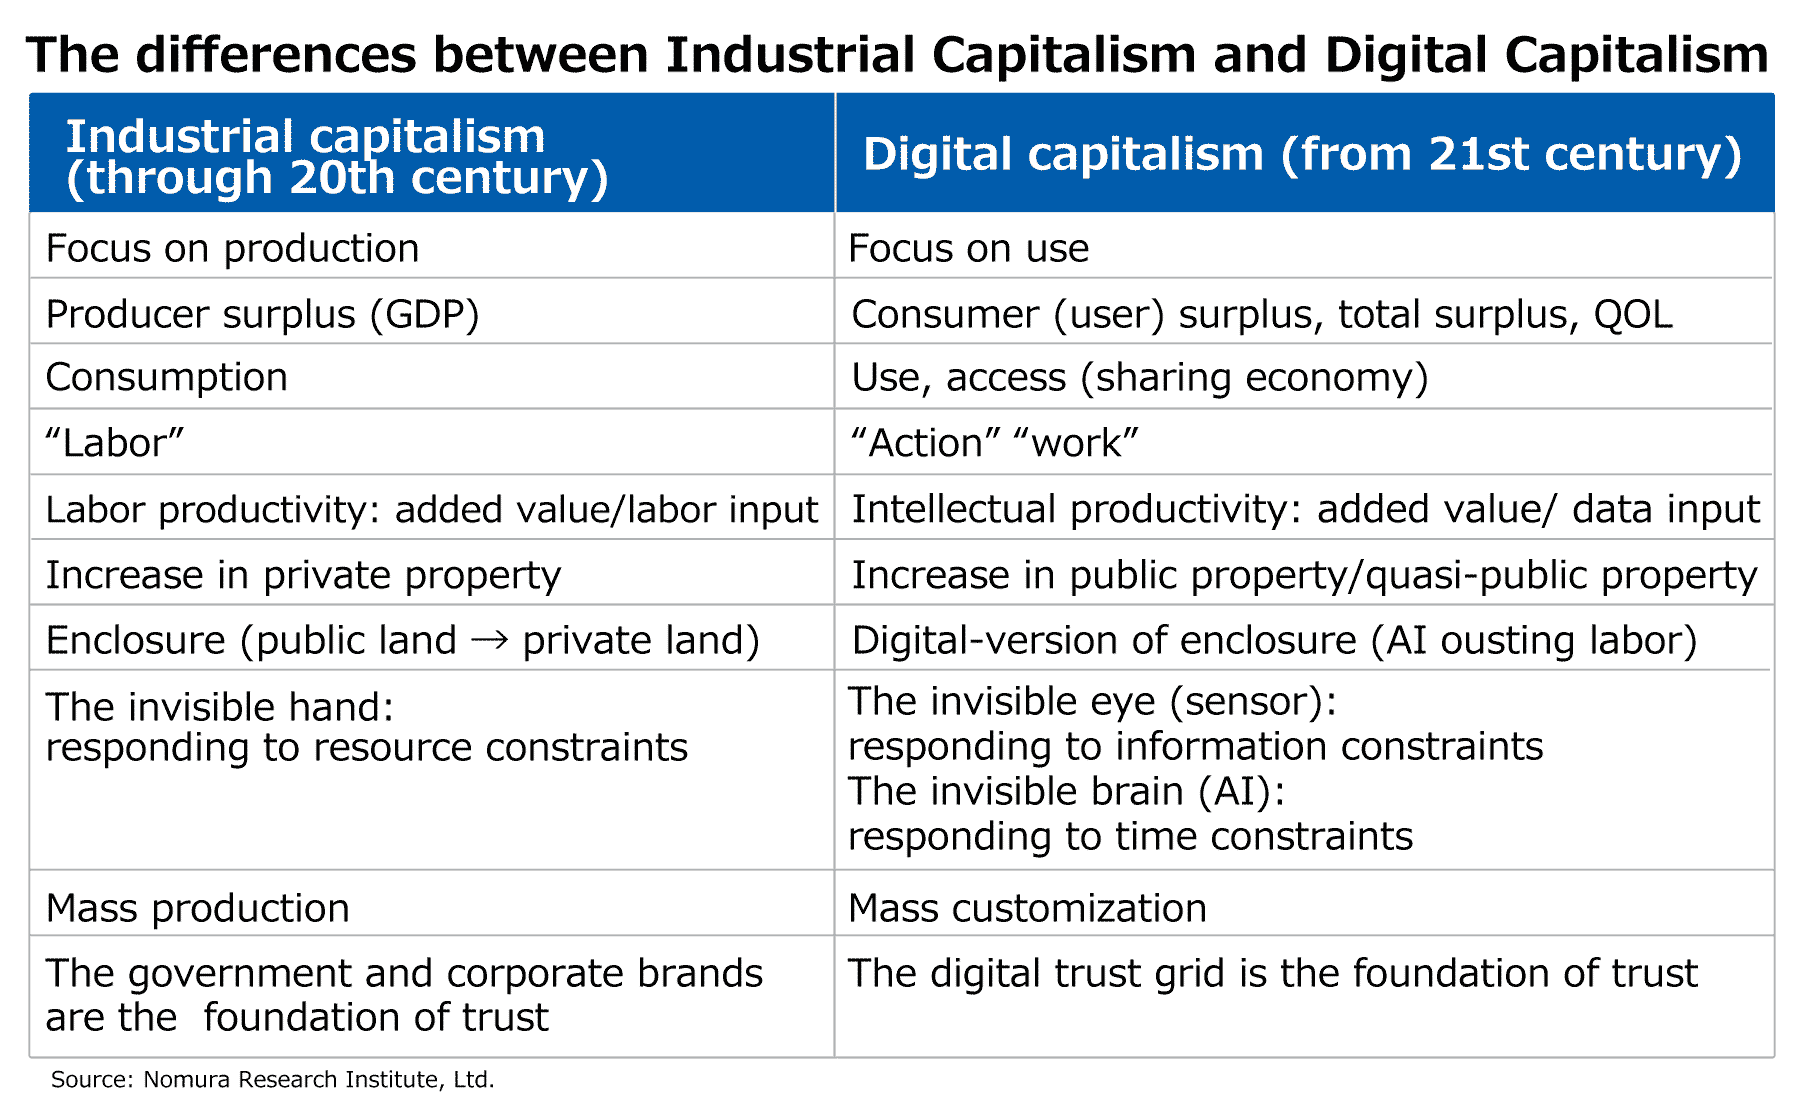 The differences between Industrial Capitalism and Digital Capitalism